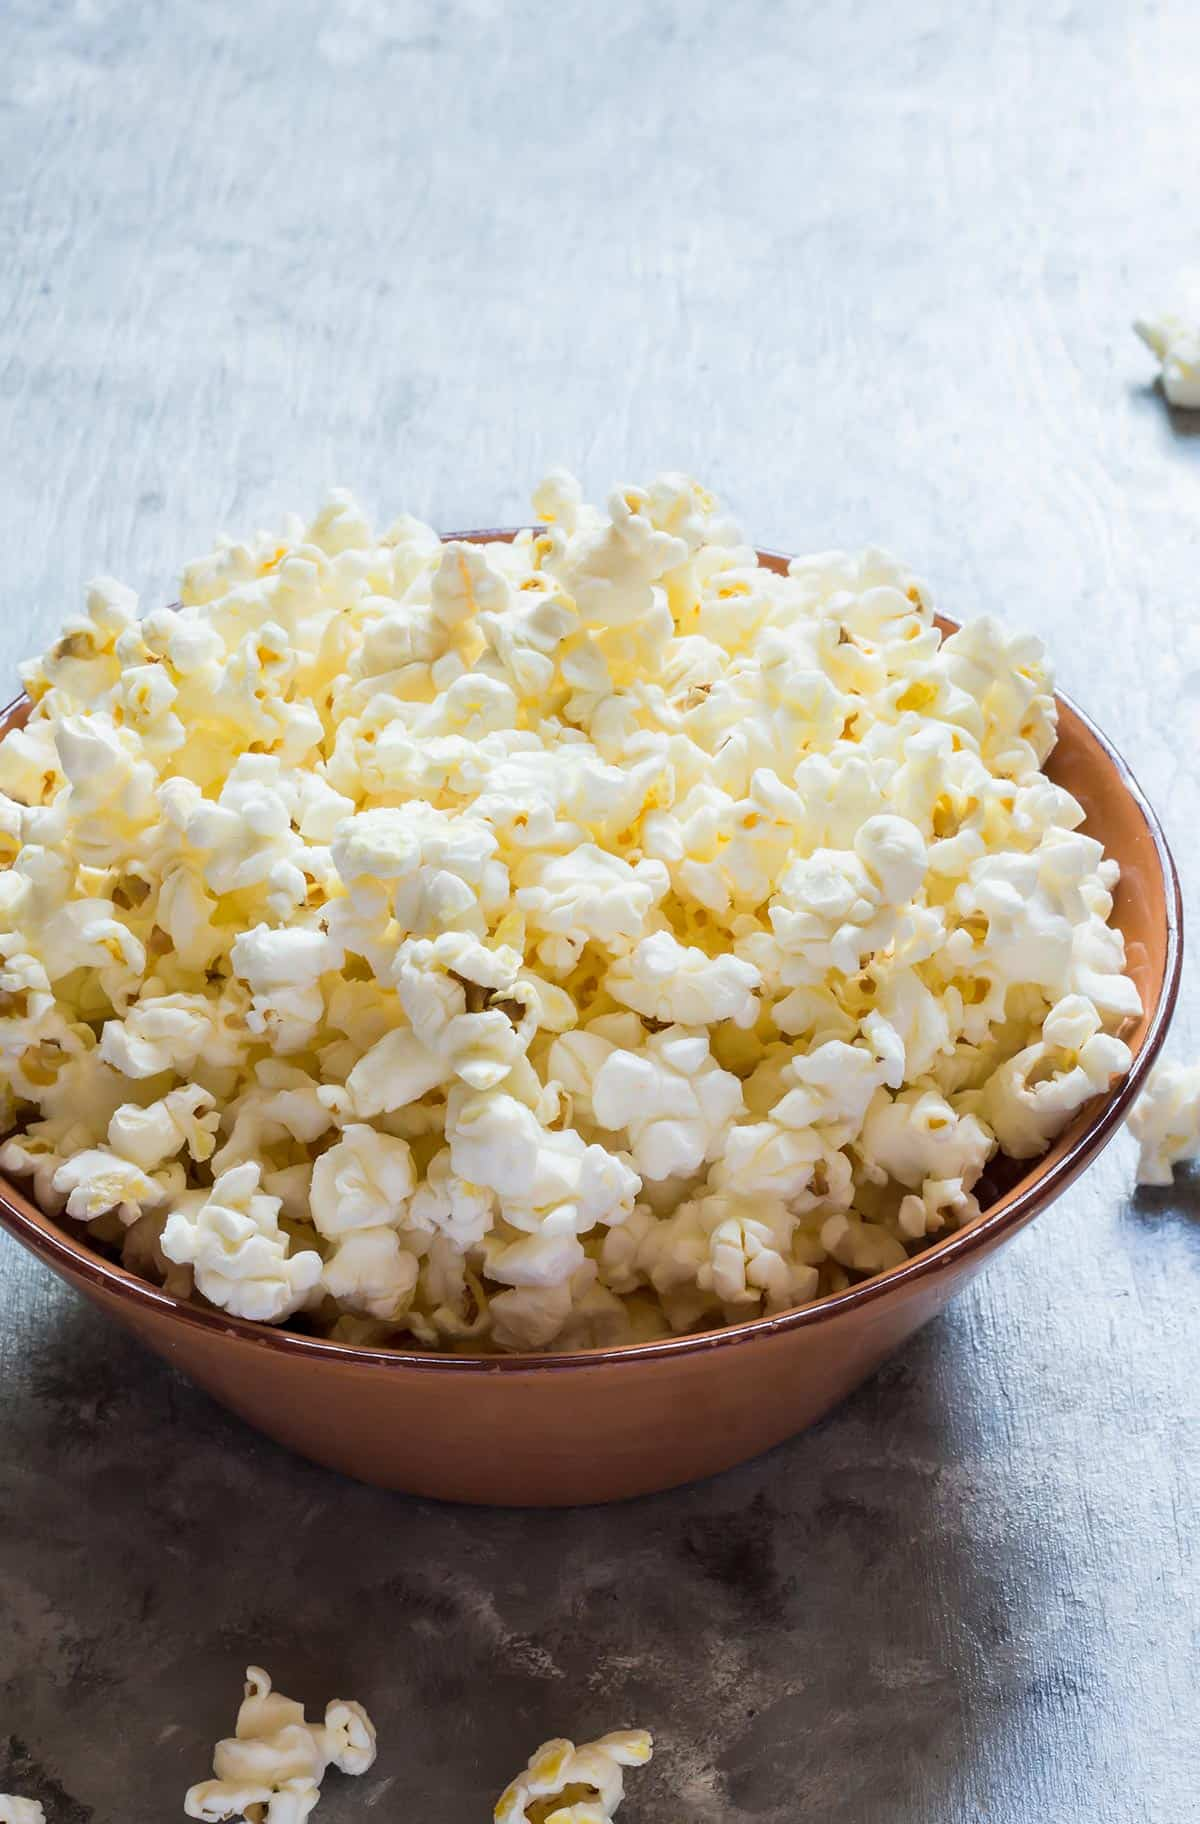 The Secret Life of Popcorn: Why